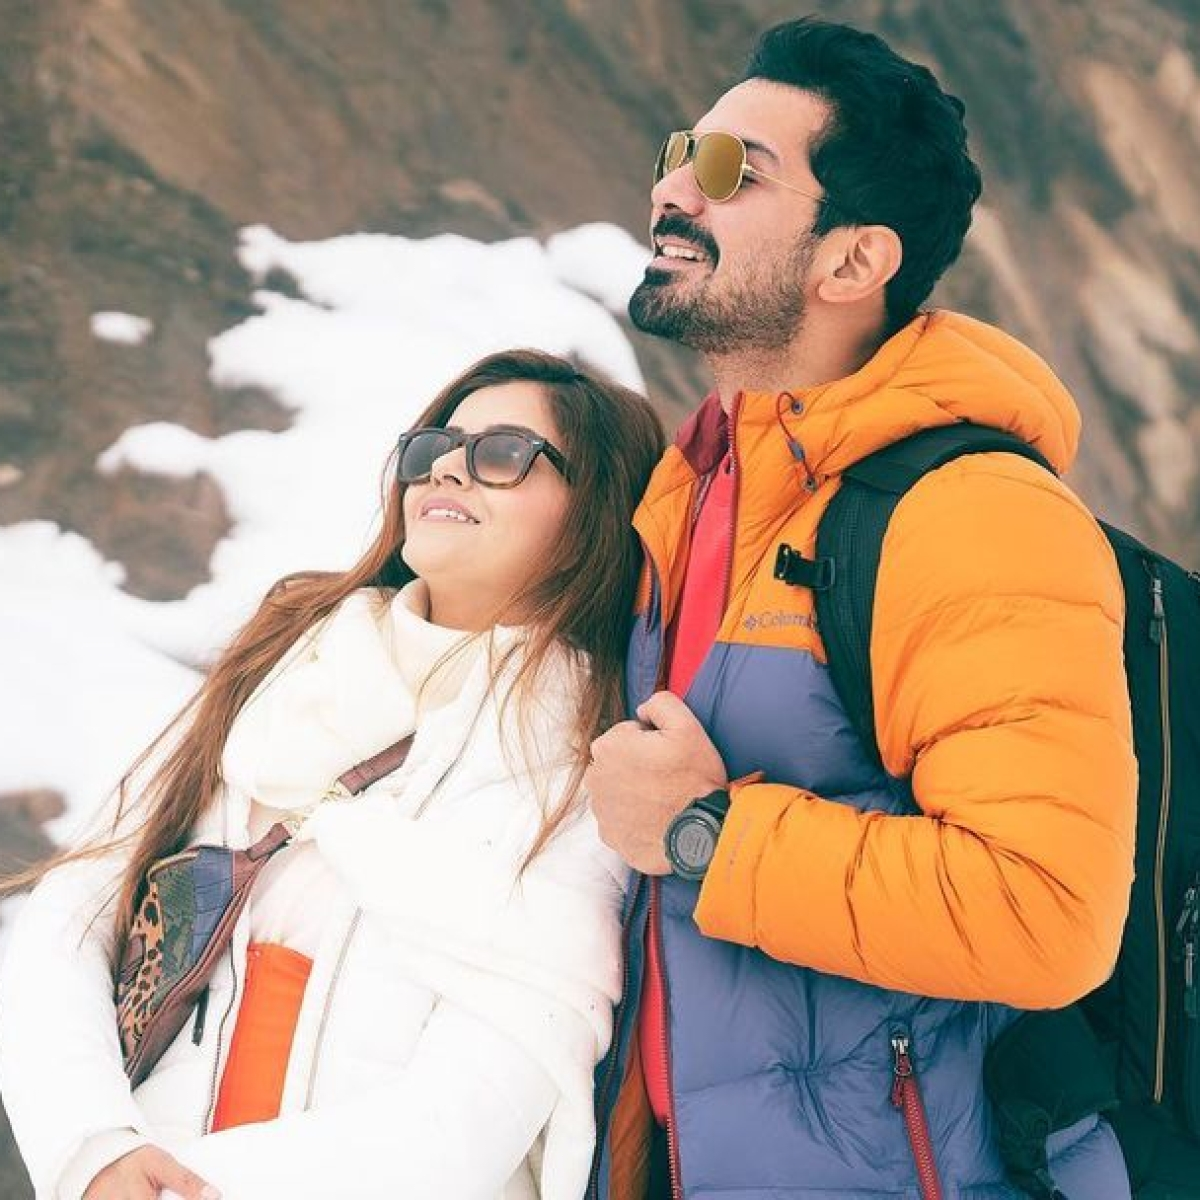 'Life is incomplete': Abhinav Shukla's emotional post for wife Rubina Dilaik after she tests positive for COVID-19